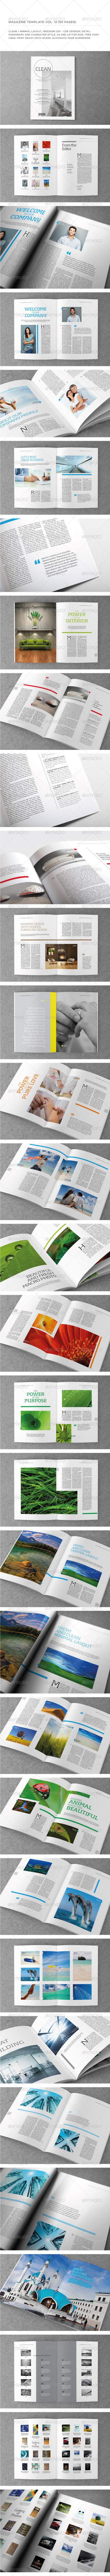 A4/Letter 50 Pages mgz (Vol. 12) - Magazines Print Templates